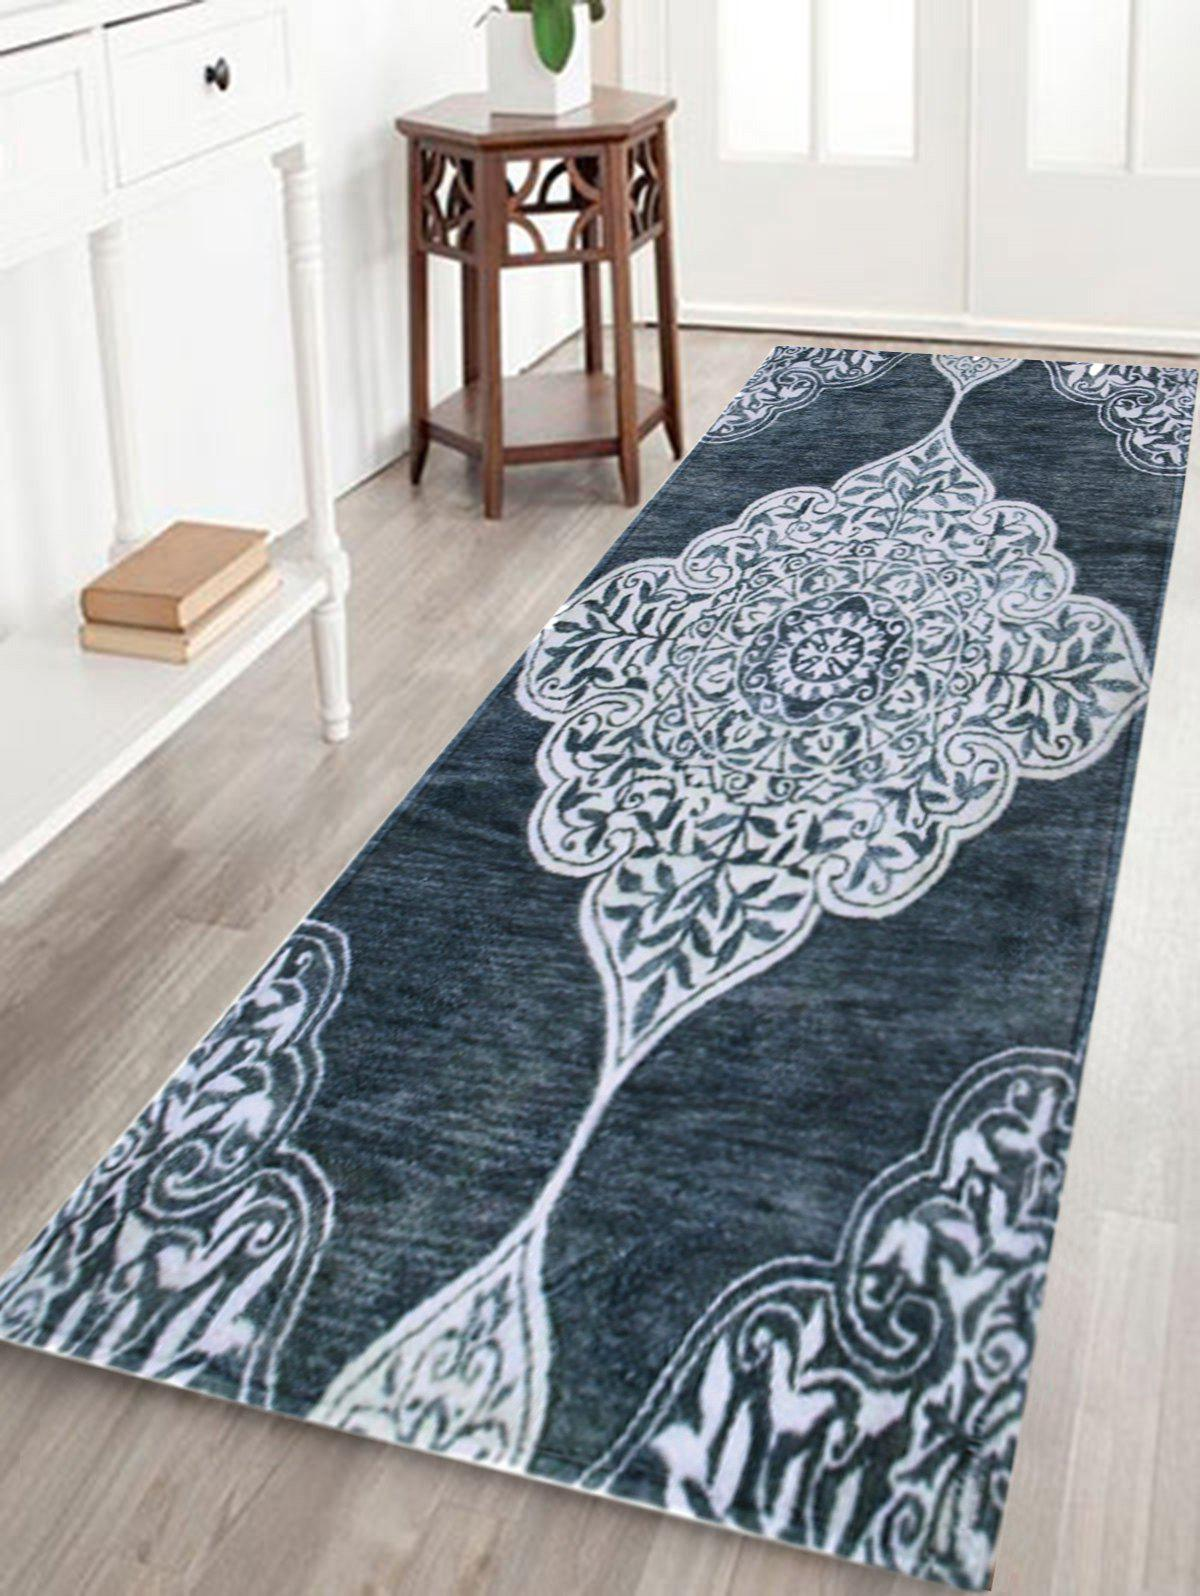 Home Decor Persian Totem Printed CarpetHOME<br><br>Size: W24 INCH * L71 INCH; Color: SMOKY GRAY; Products Type: Bath rugs; Materials: Coral FLeece; Pattern: Print; Style: Bohemian; Shape: Rectangular; Package Contents: 1 x Rug;